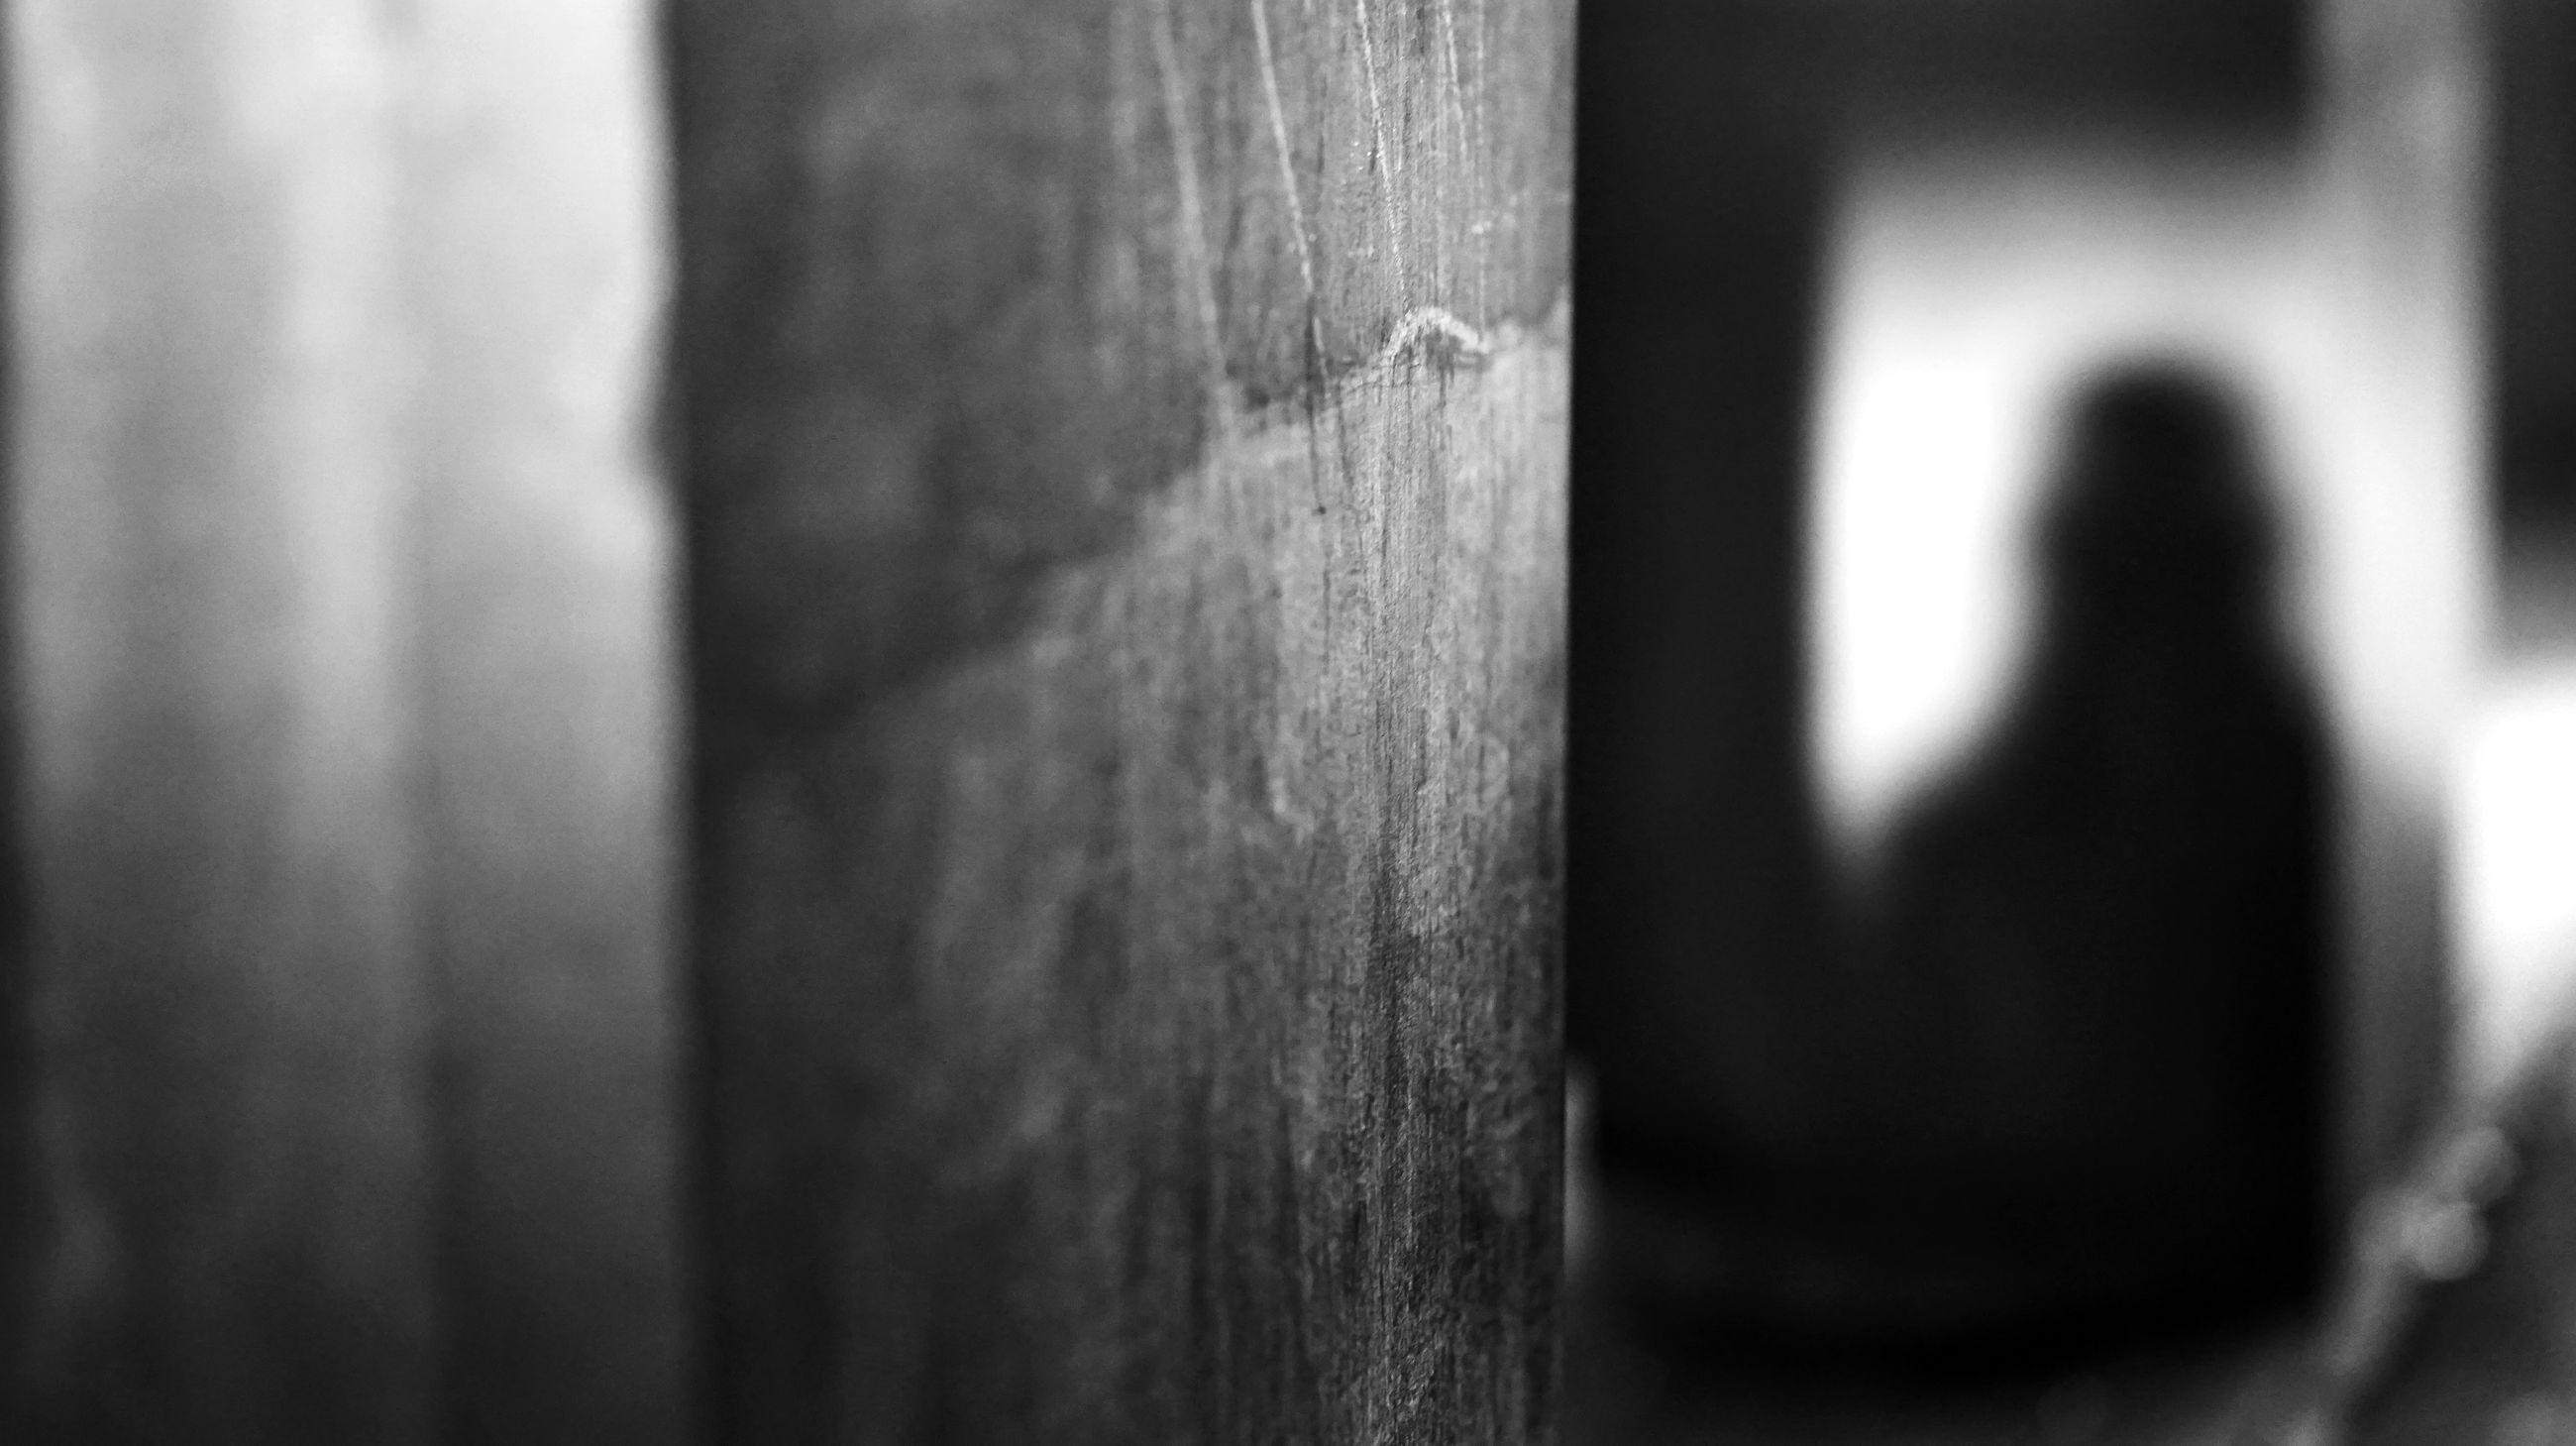 wood - material, selective focus, day, people, outdoors, real people, lifestyles, adult, architecture, built structure, close-up, men, women, wall, waist up, door, social issues, standing, focus on foreground